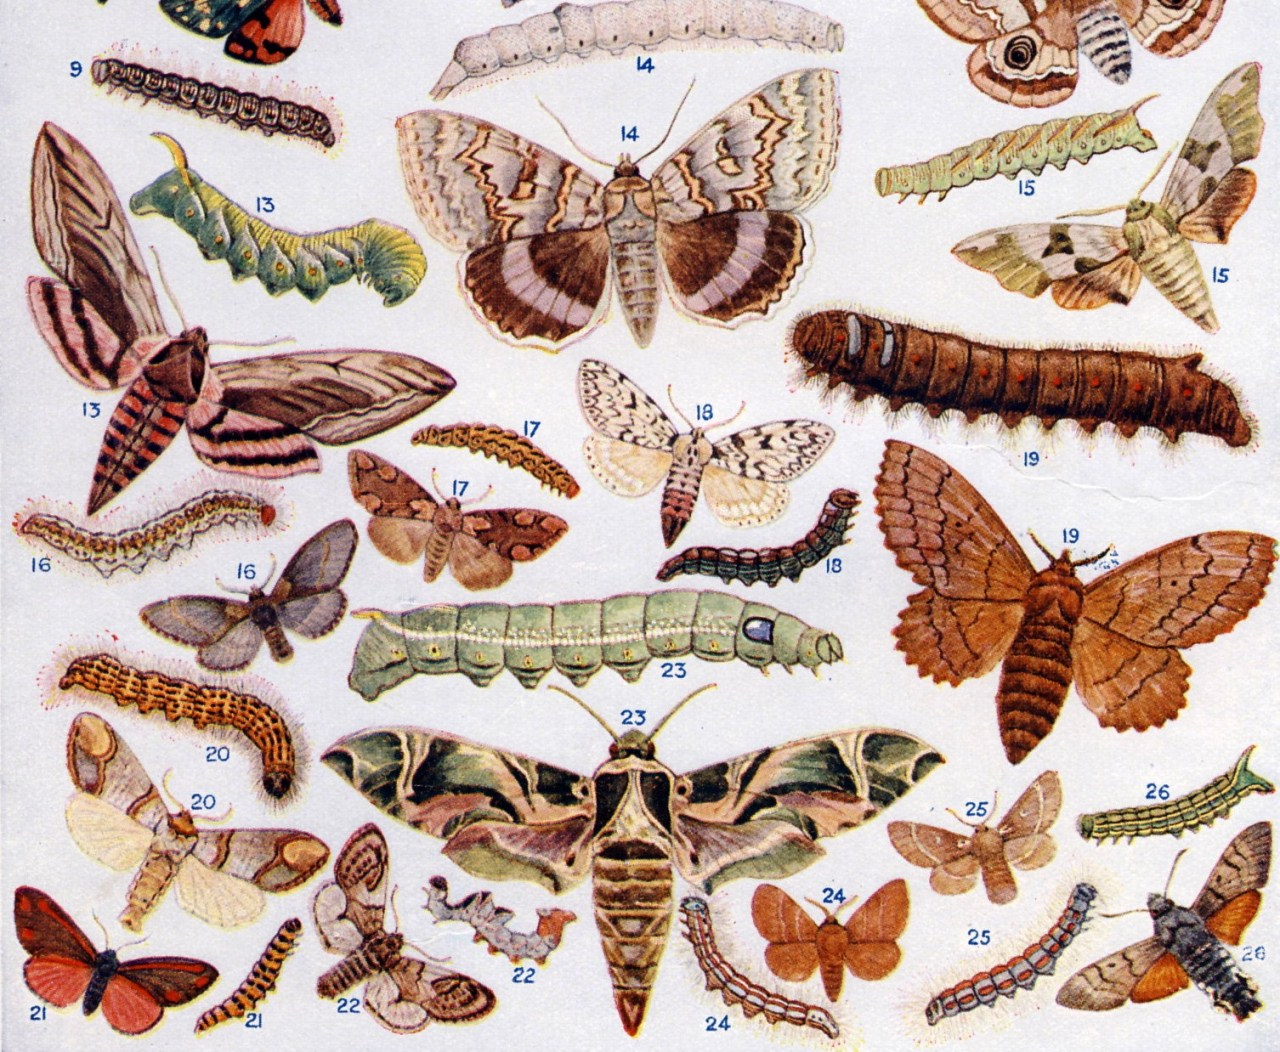 Detail British Moths and their Caterpillars. Arthur Mee ed., The Children's Encyclopedia, (London: The Educational Book Company, circa 1920).